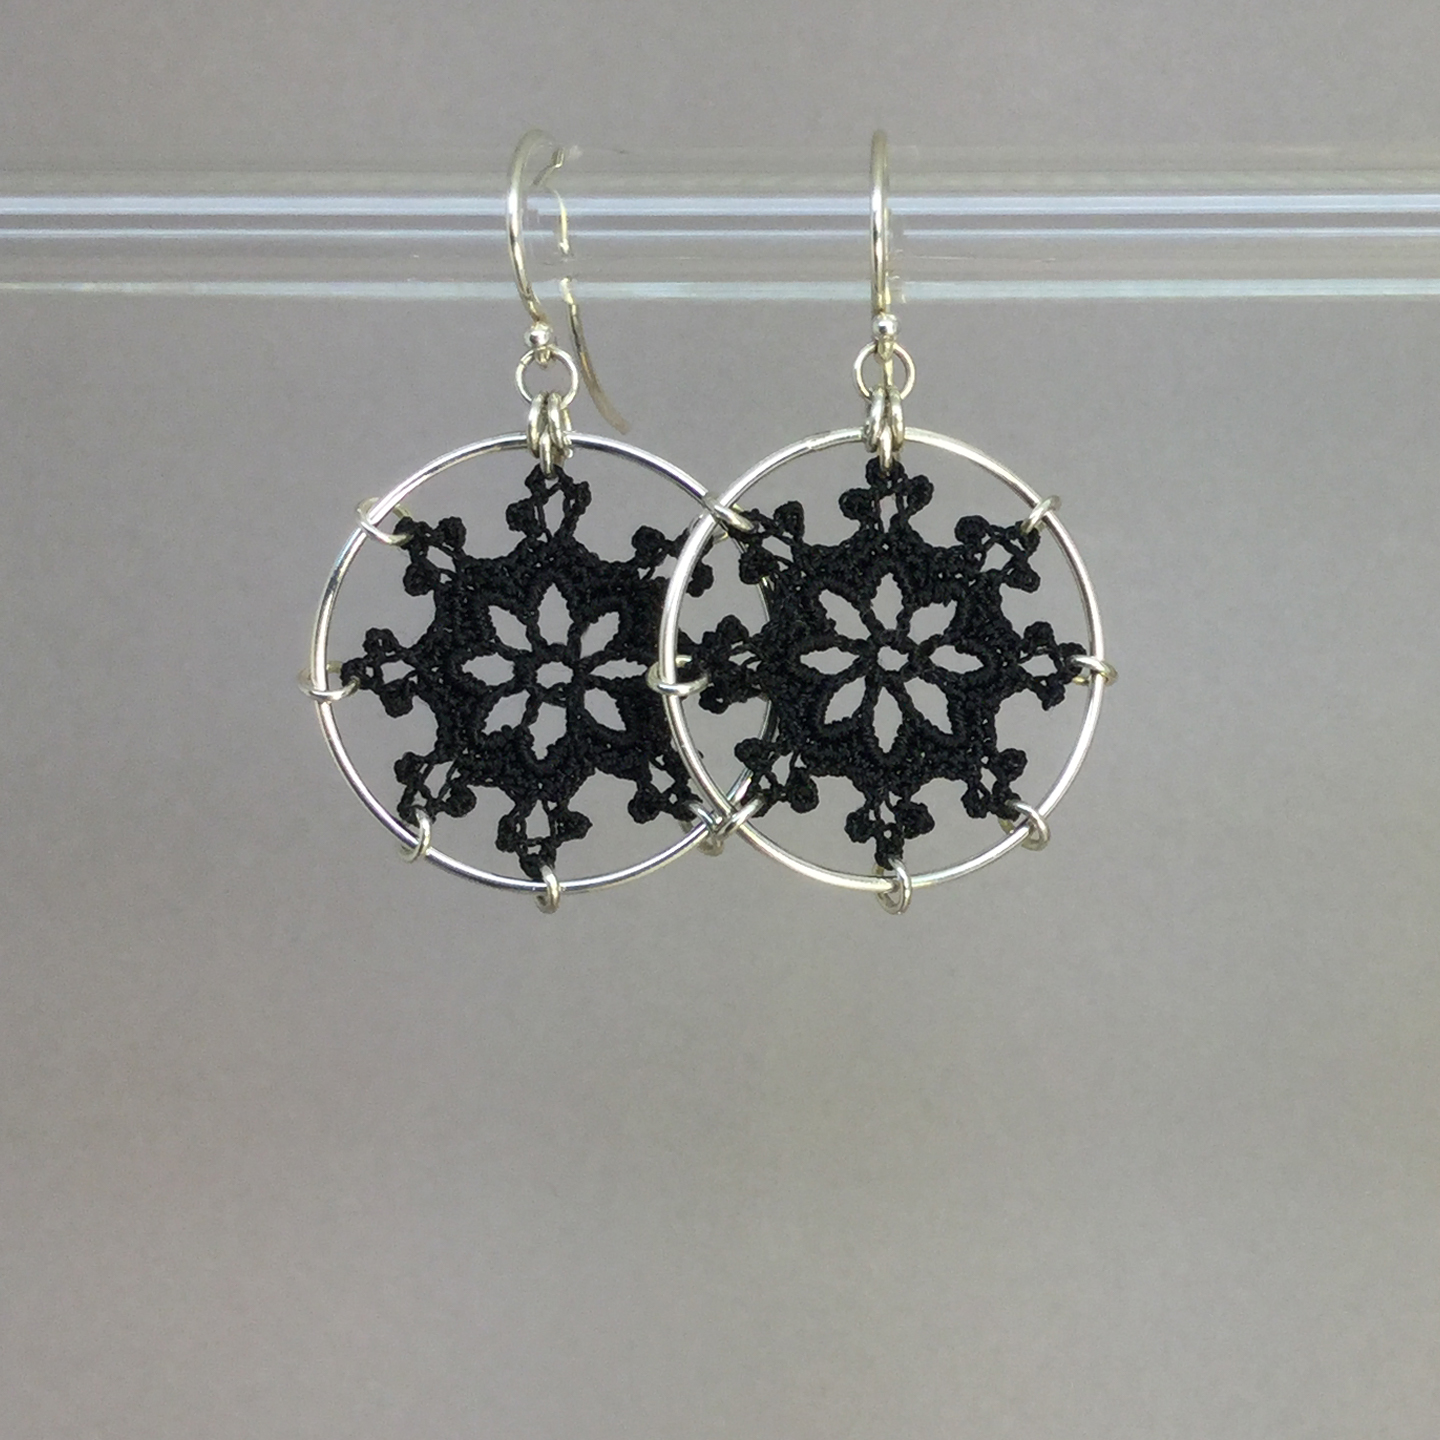 Nautical earrings, silver, black thread